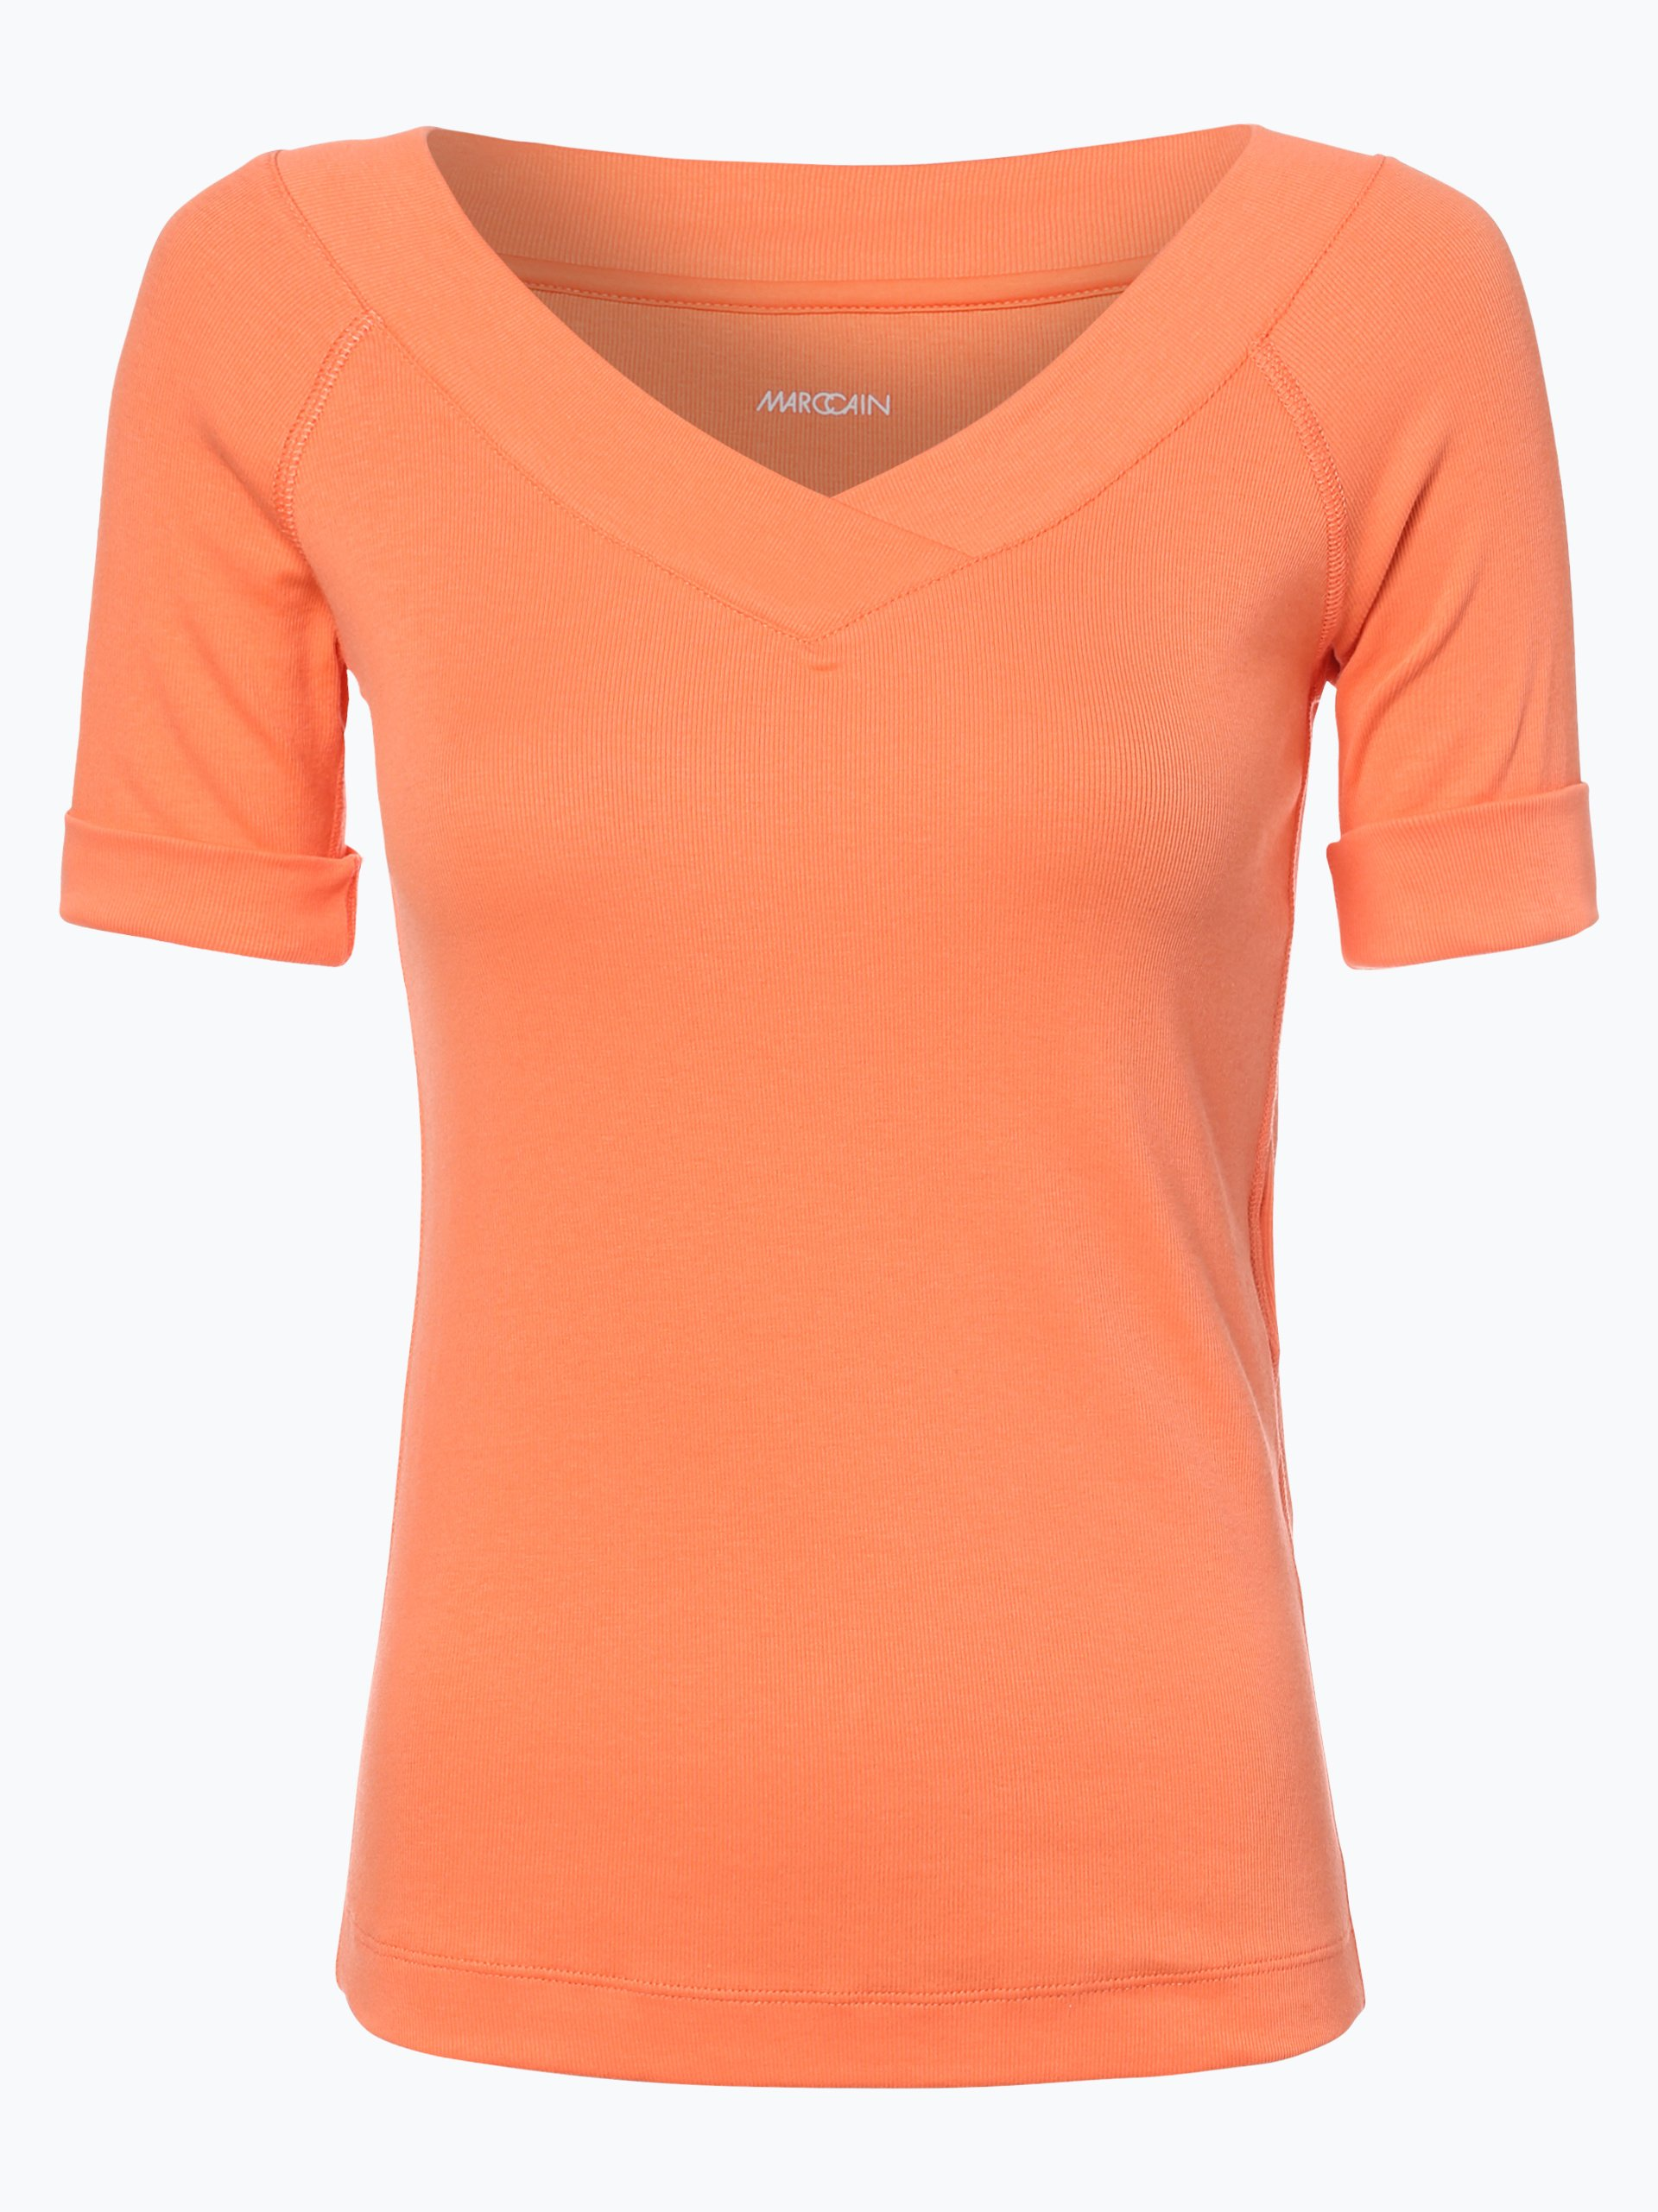 Marc Cain Sports T-shirt damski